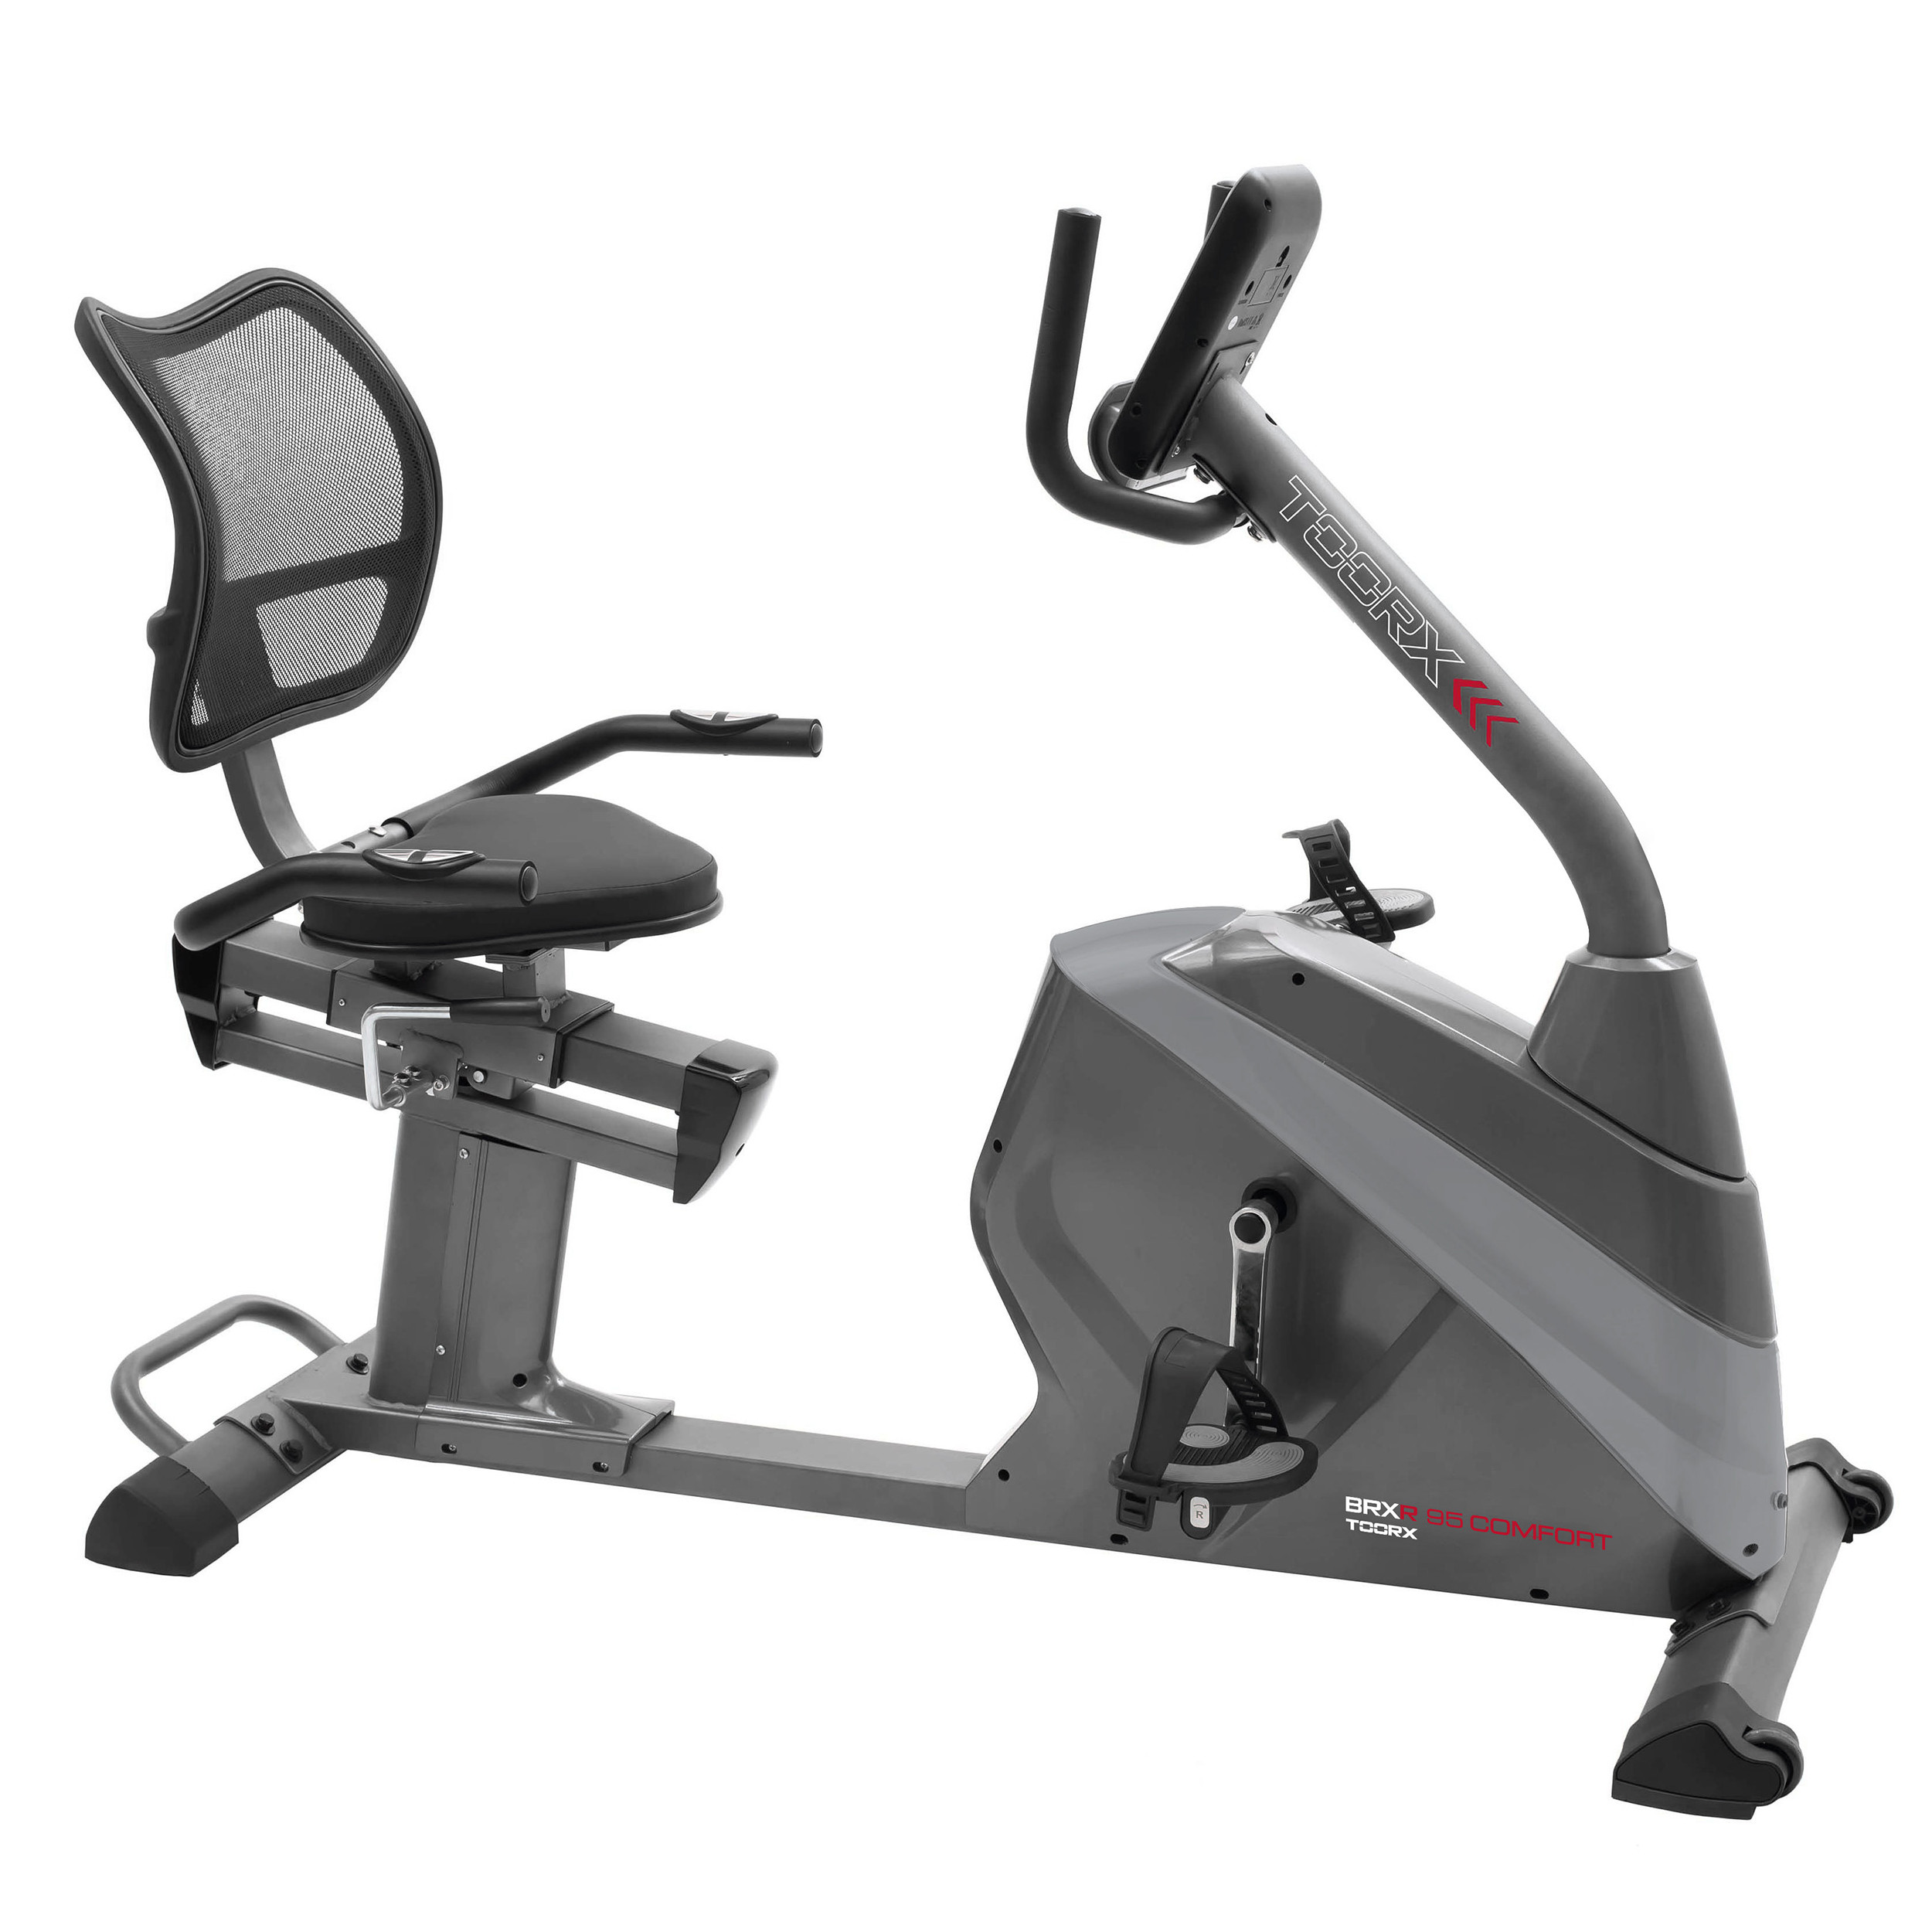 cyclette orizzontale toorx brx 65 hrc